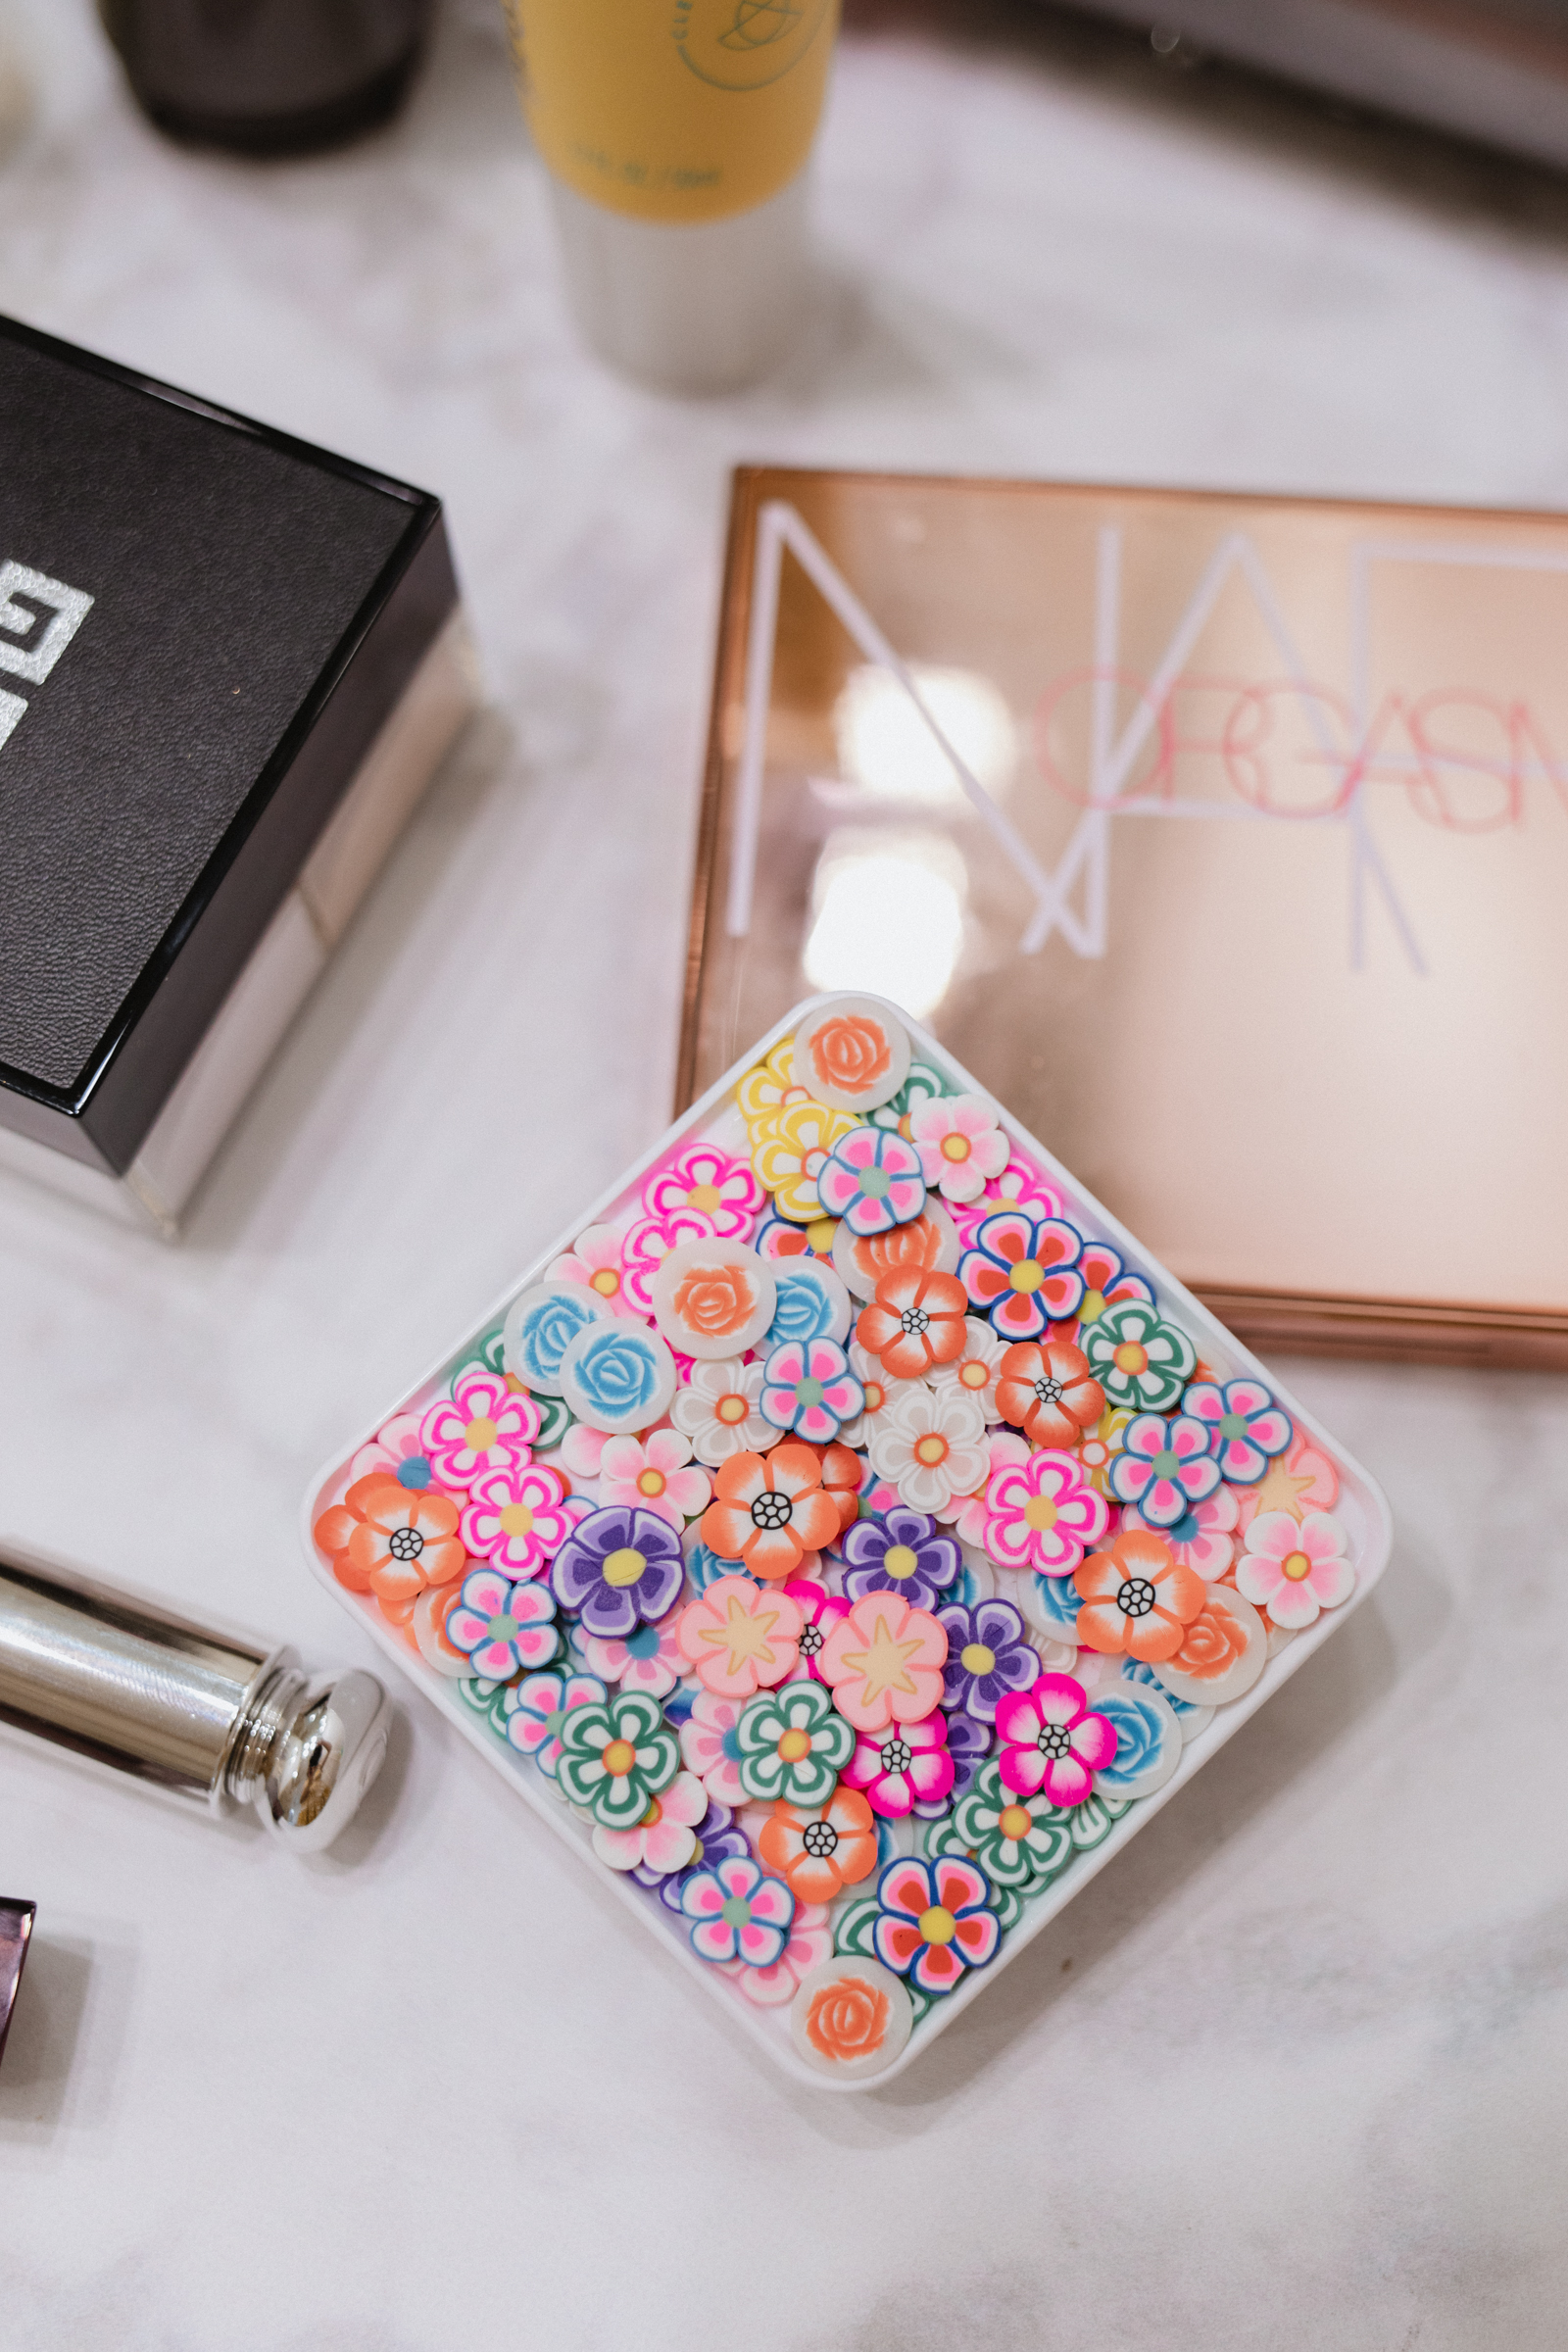 Elly Brown shares her favorite Summer beauty products from Nordstrom